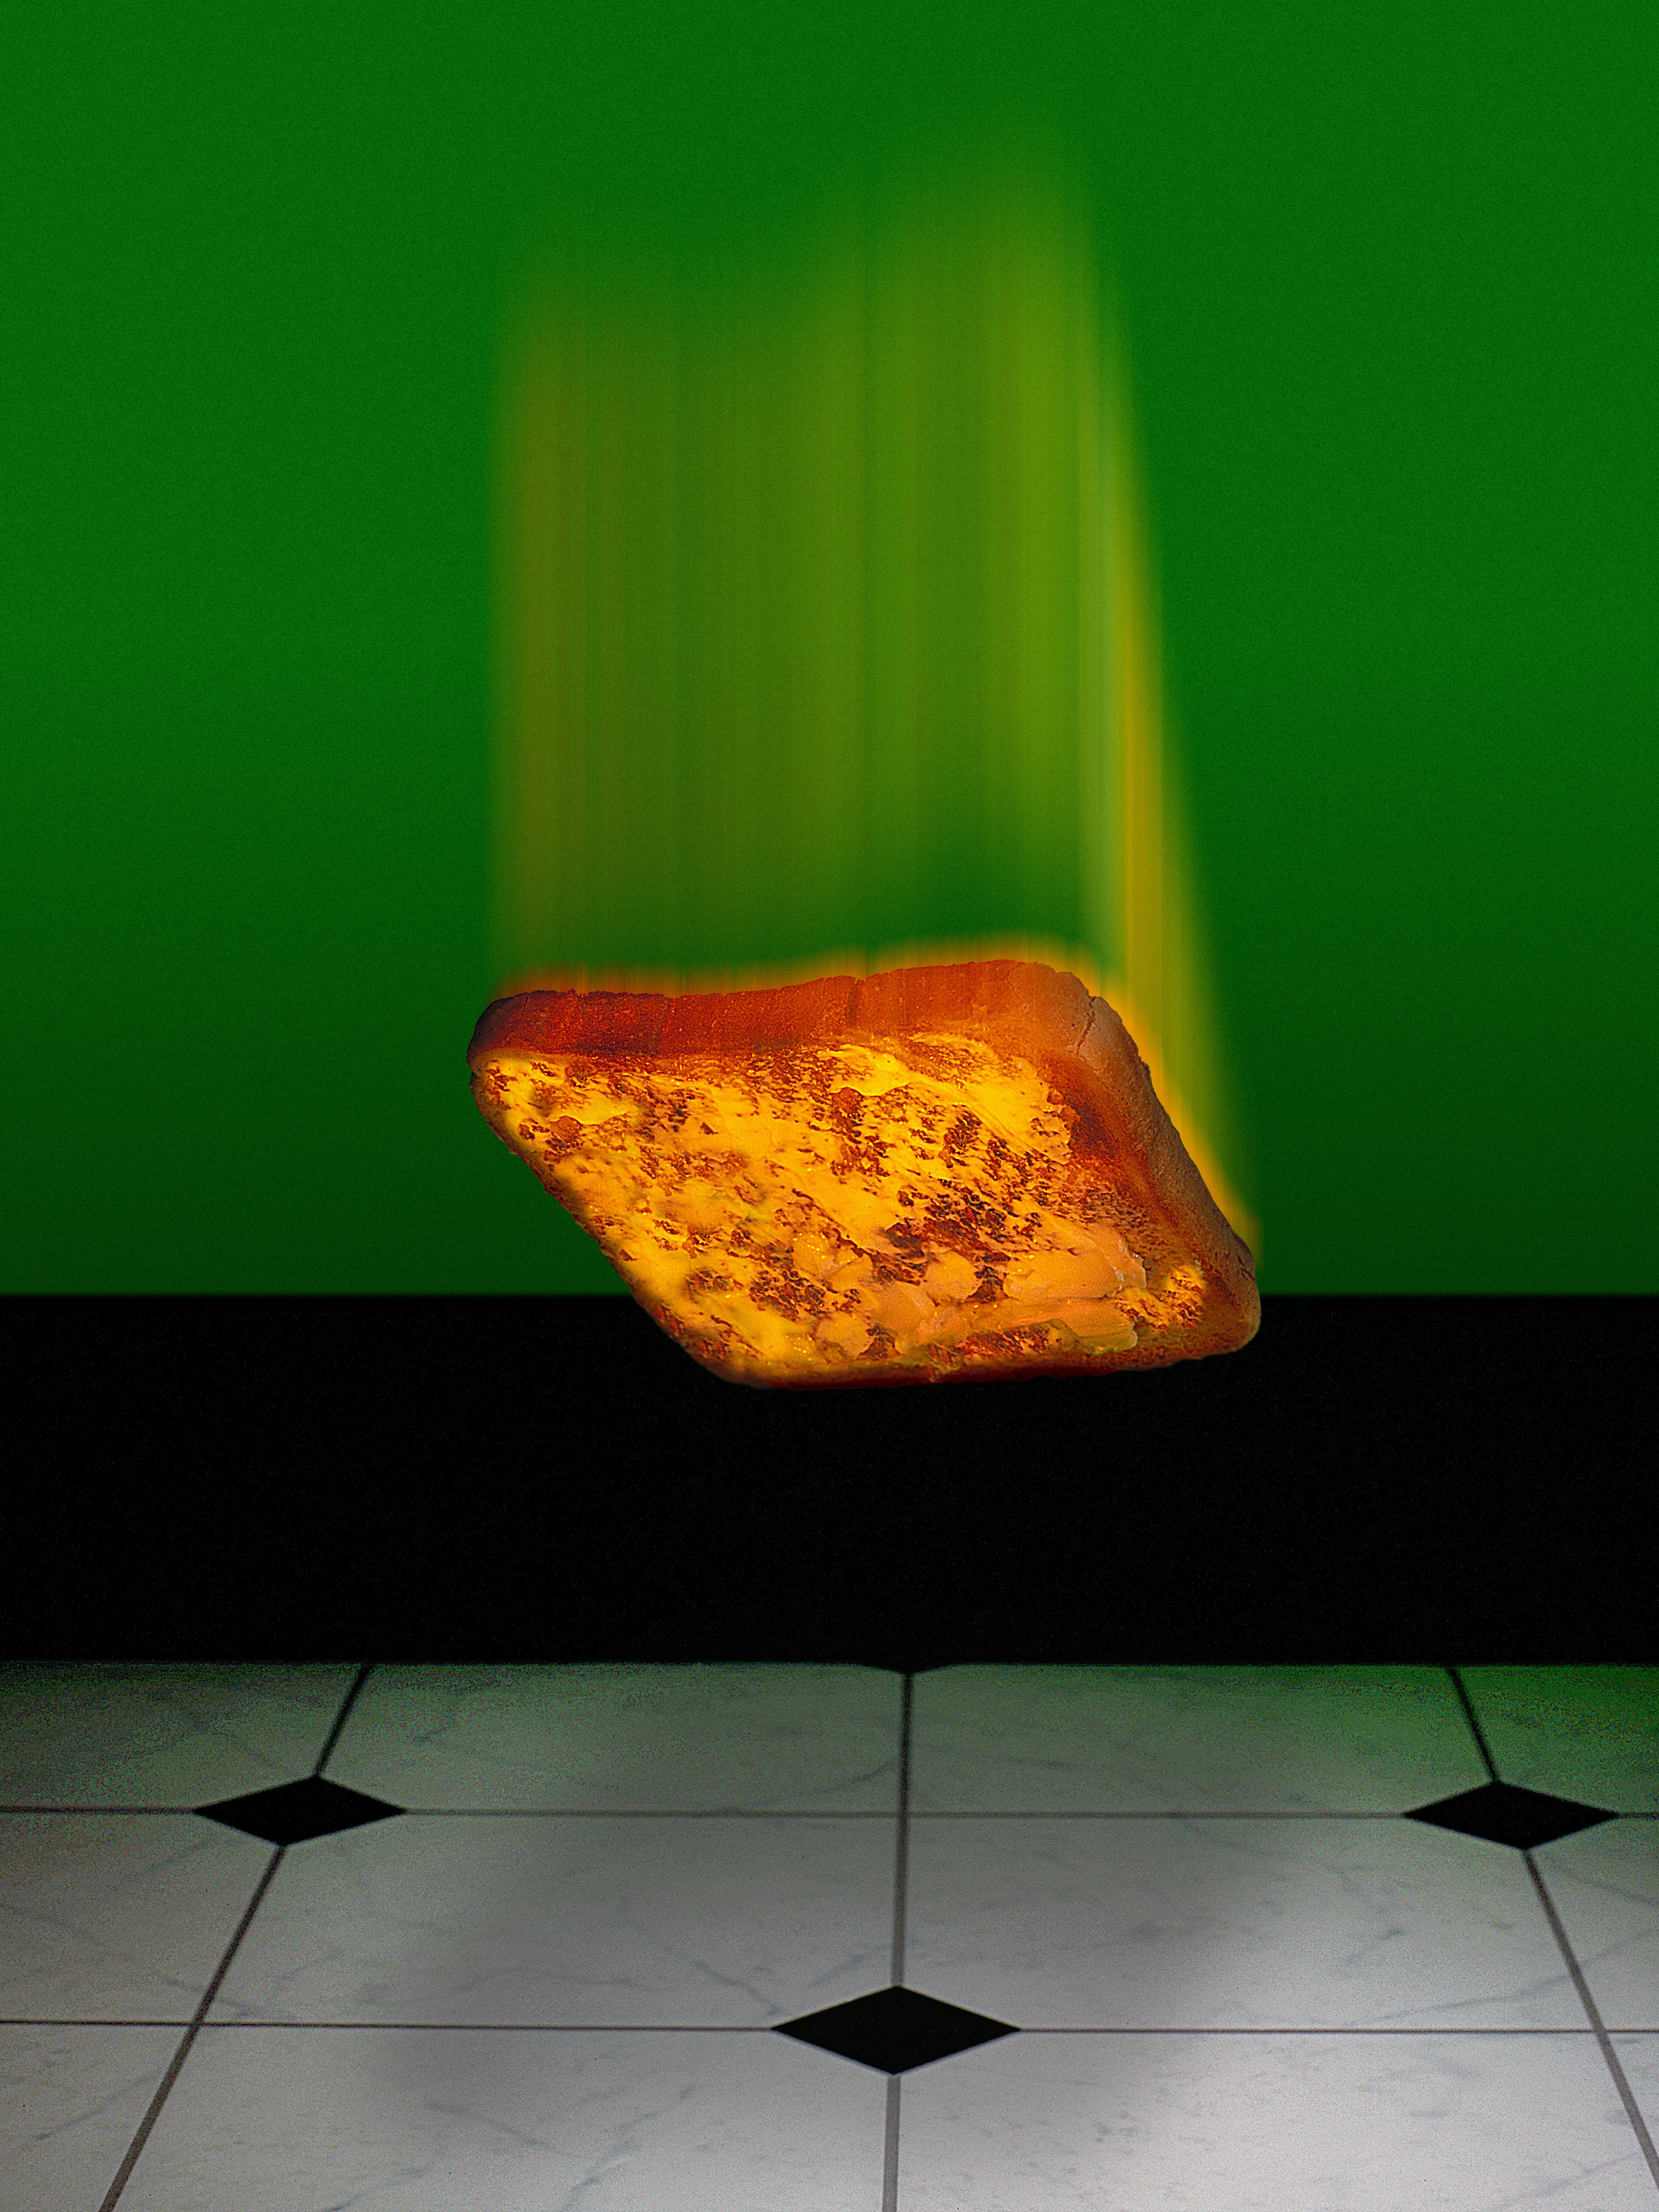 Food Safety The Five Second Rule And How Floor Bacteria